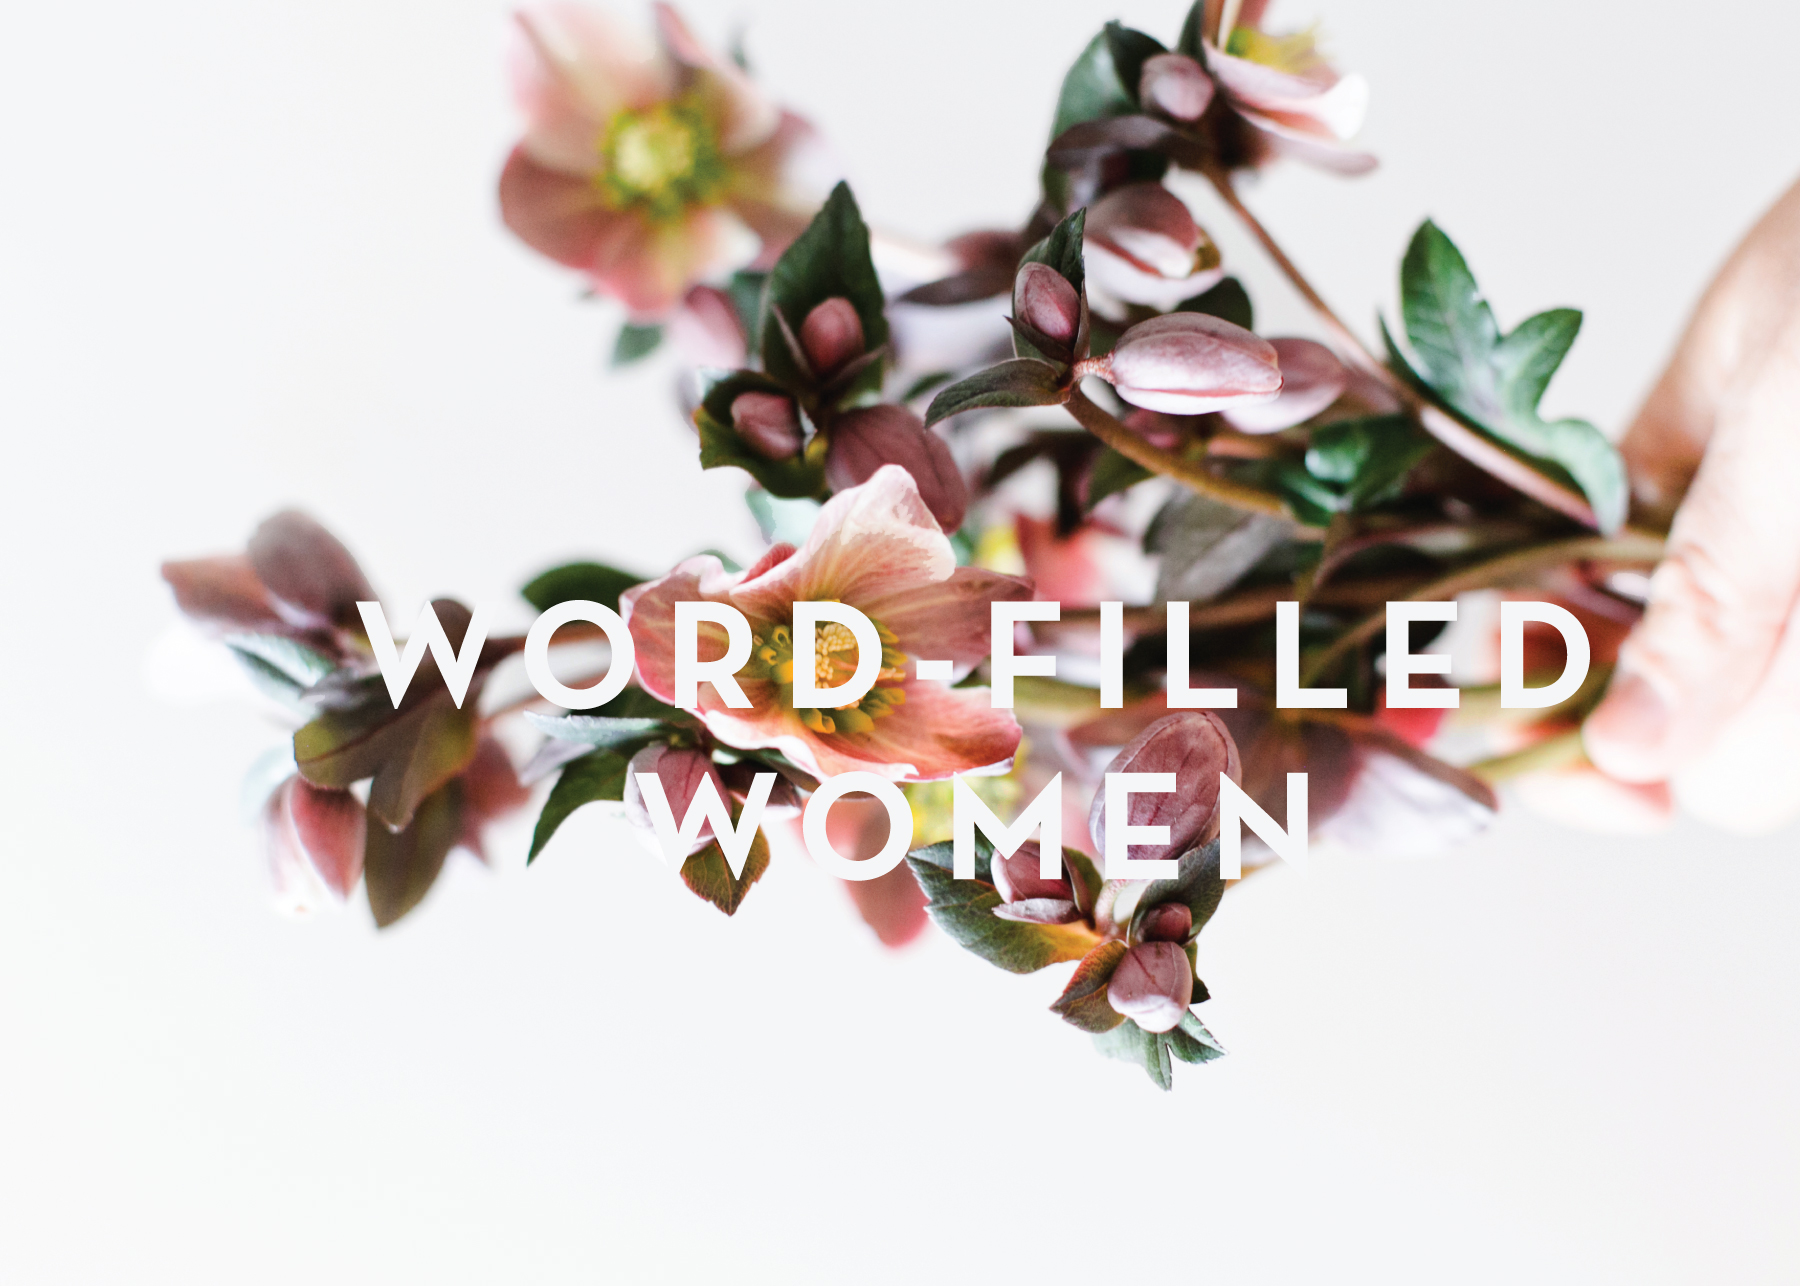 Word-Filled Women